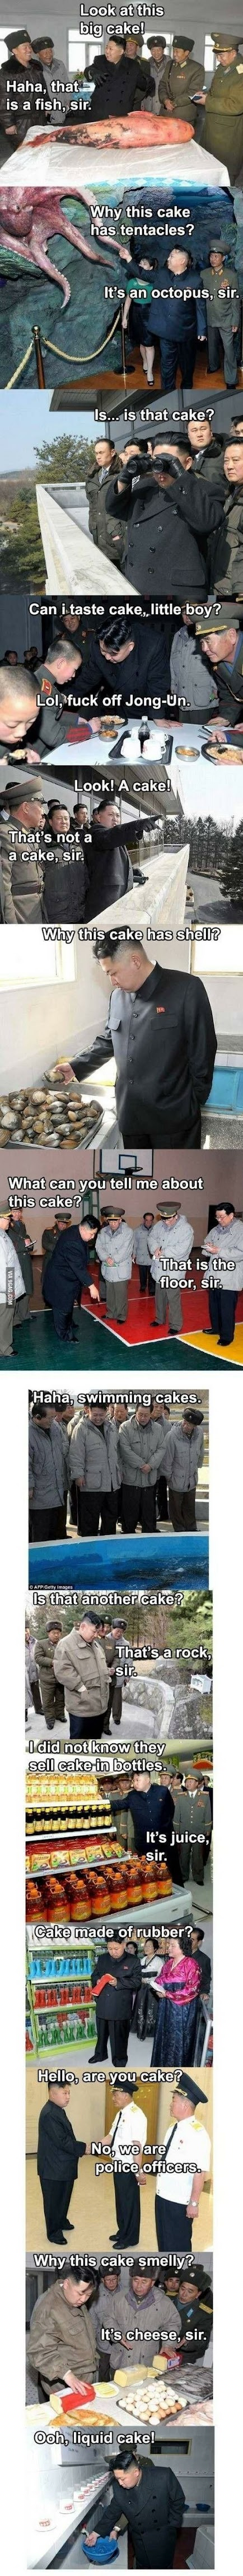 Funny Kim Yong-un Likes Cake Picture